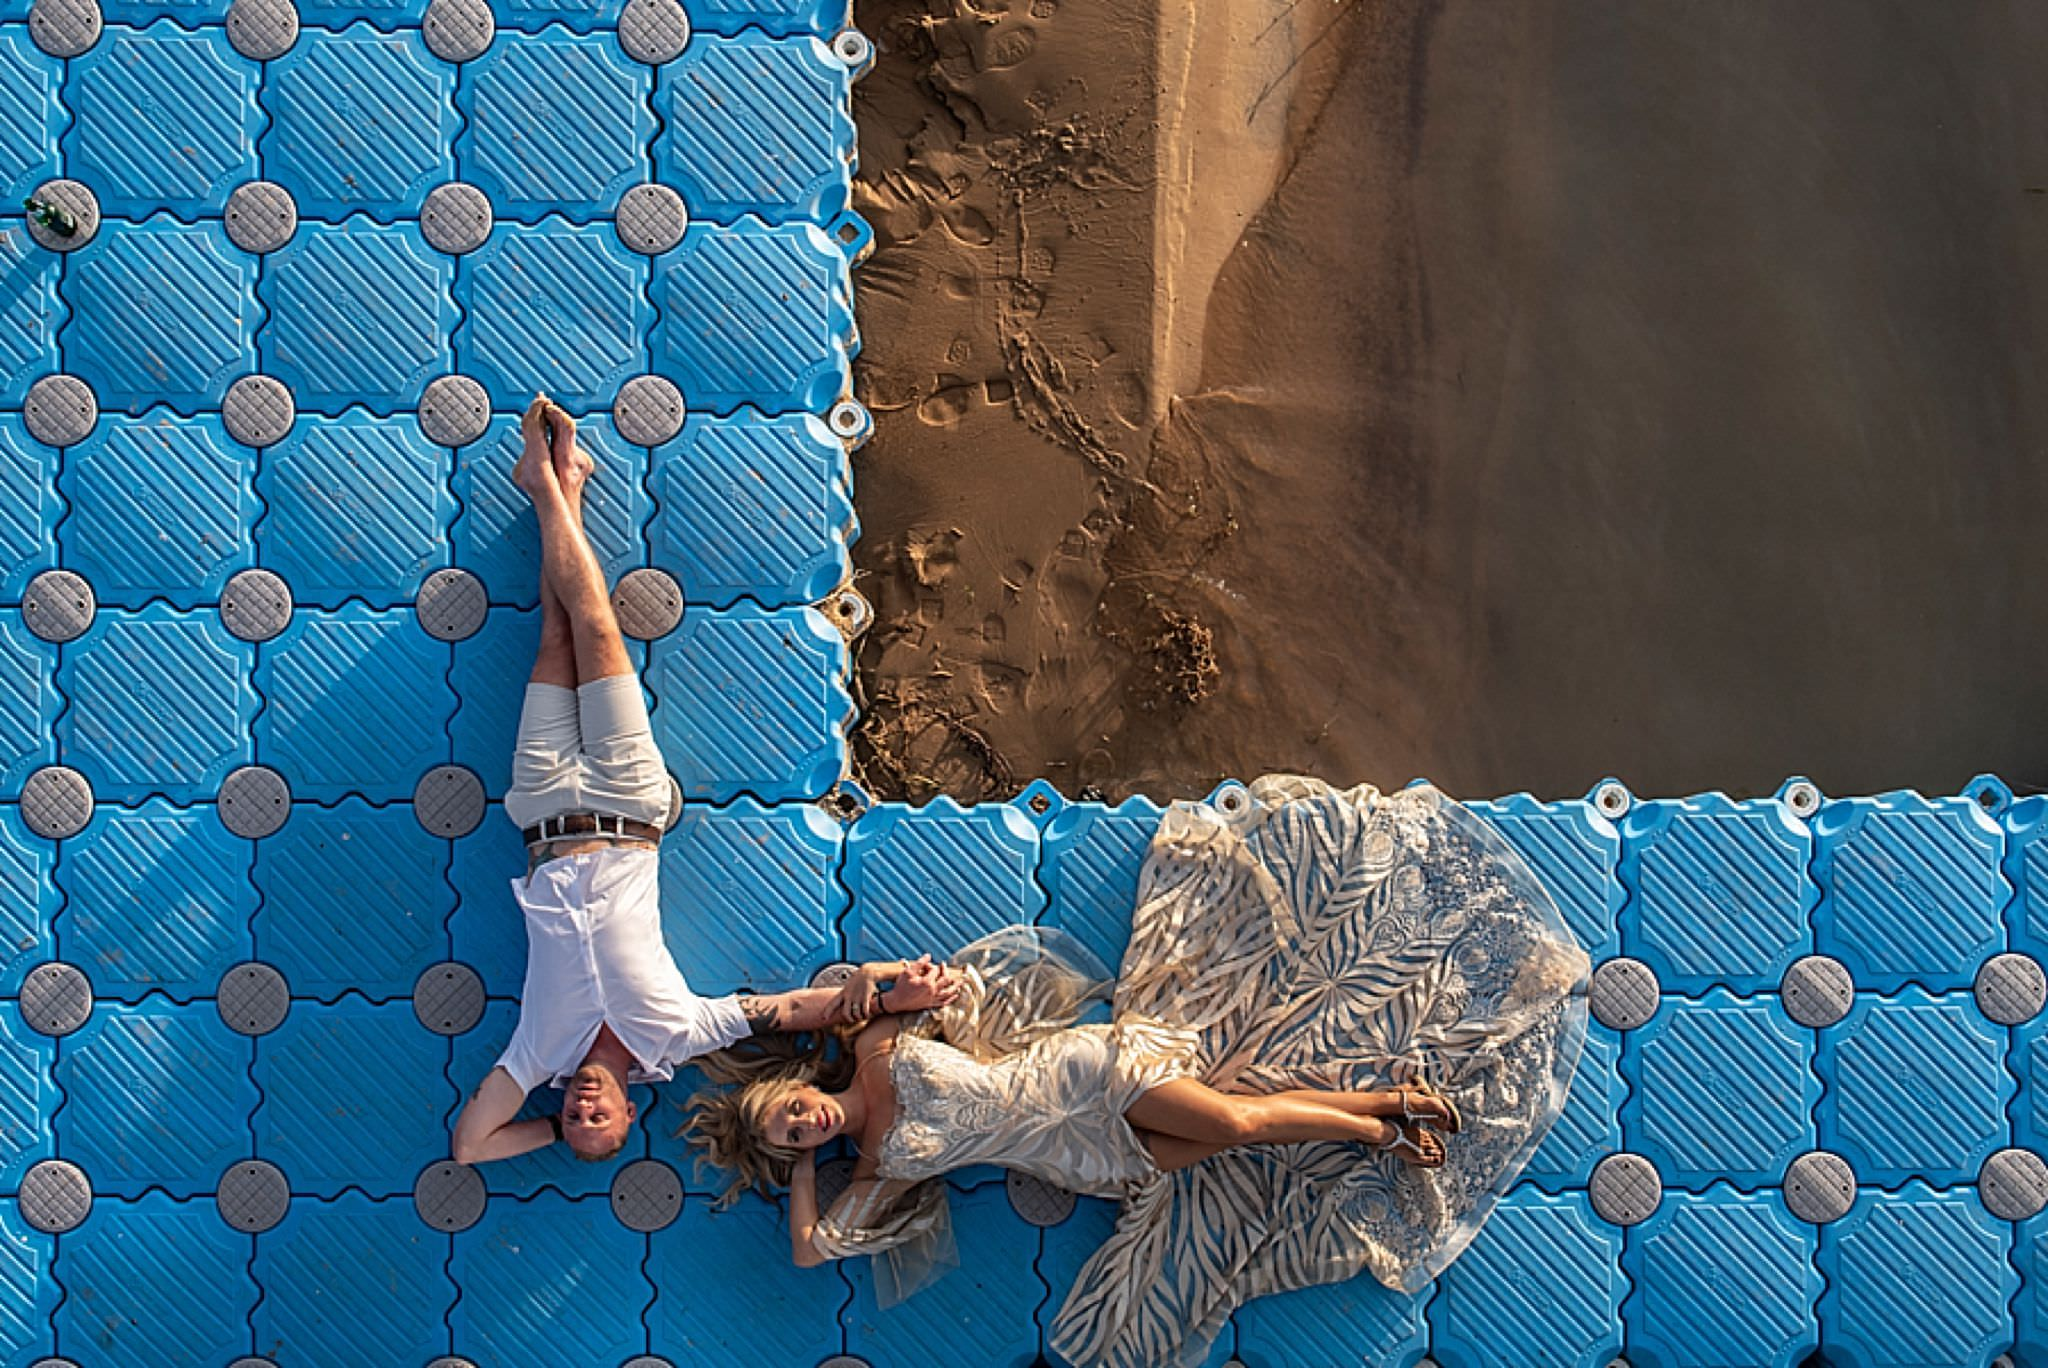 aerial view of couple above beach on aqua floor - photo by Jacki Bruniquel